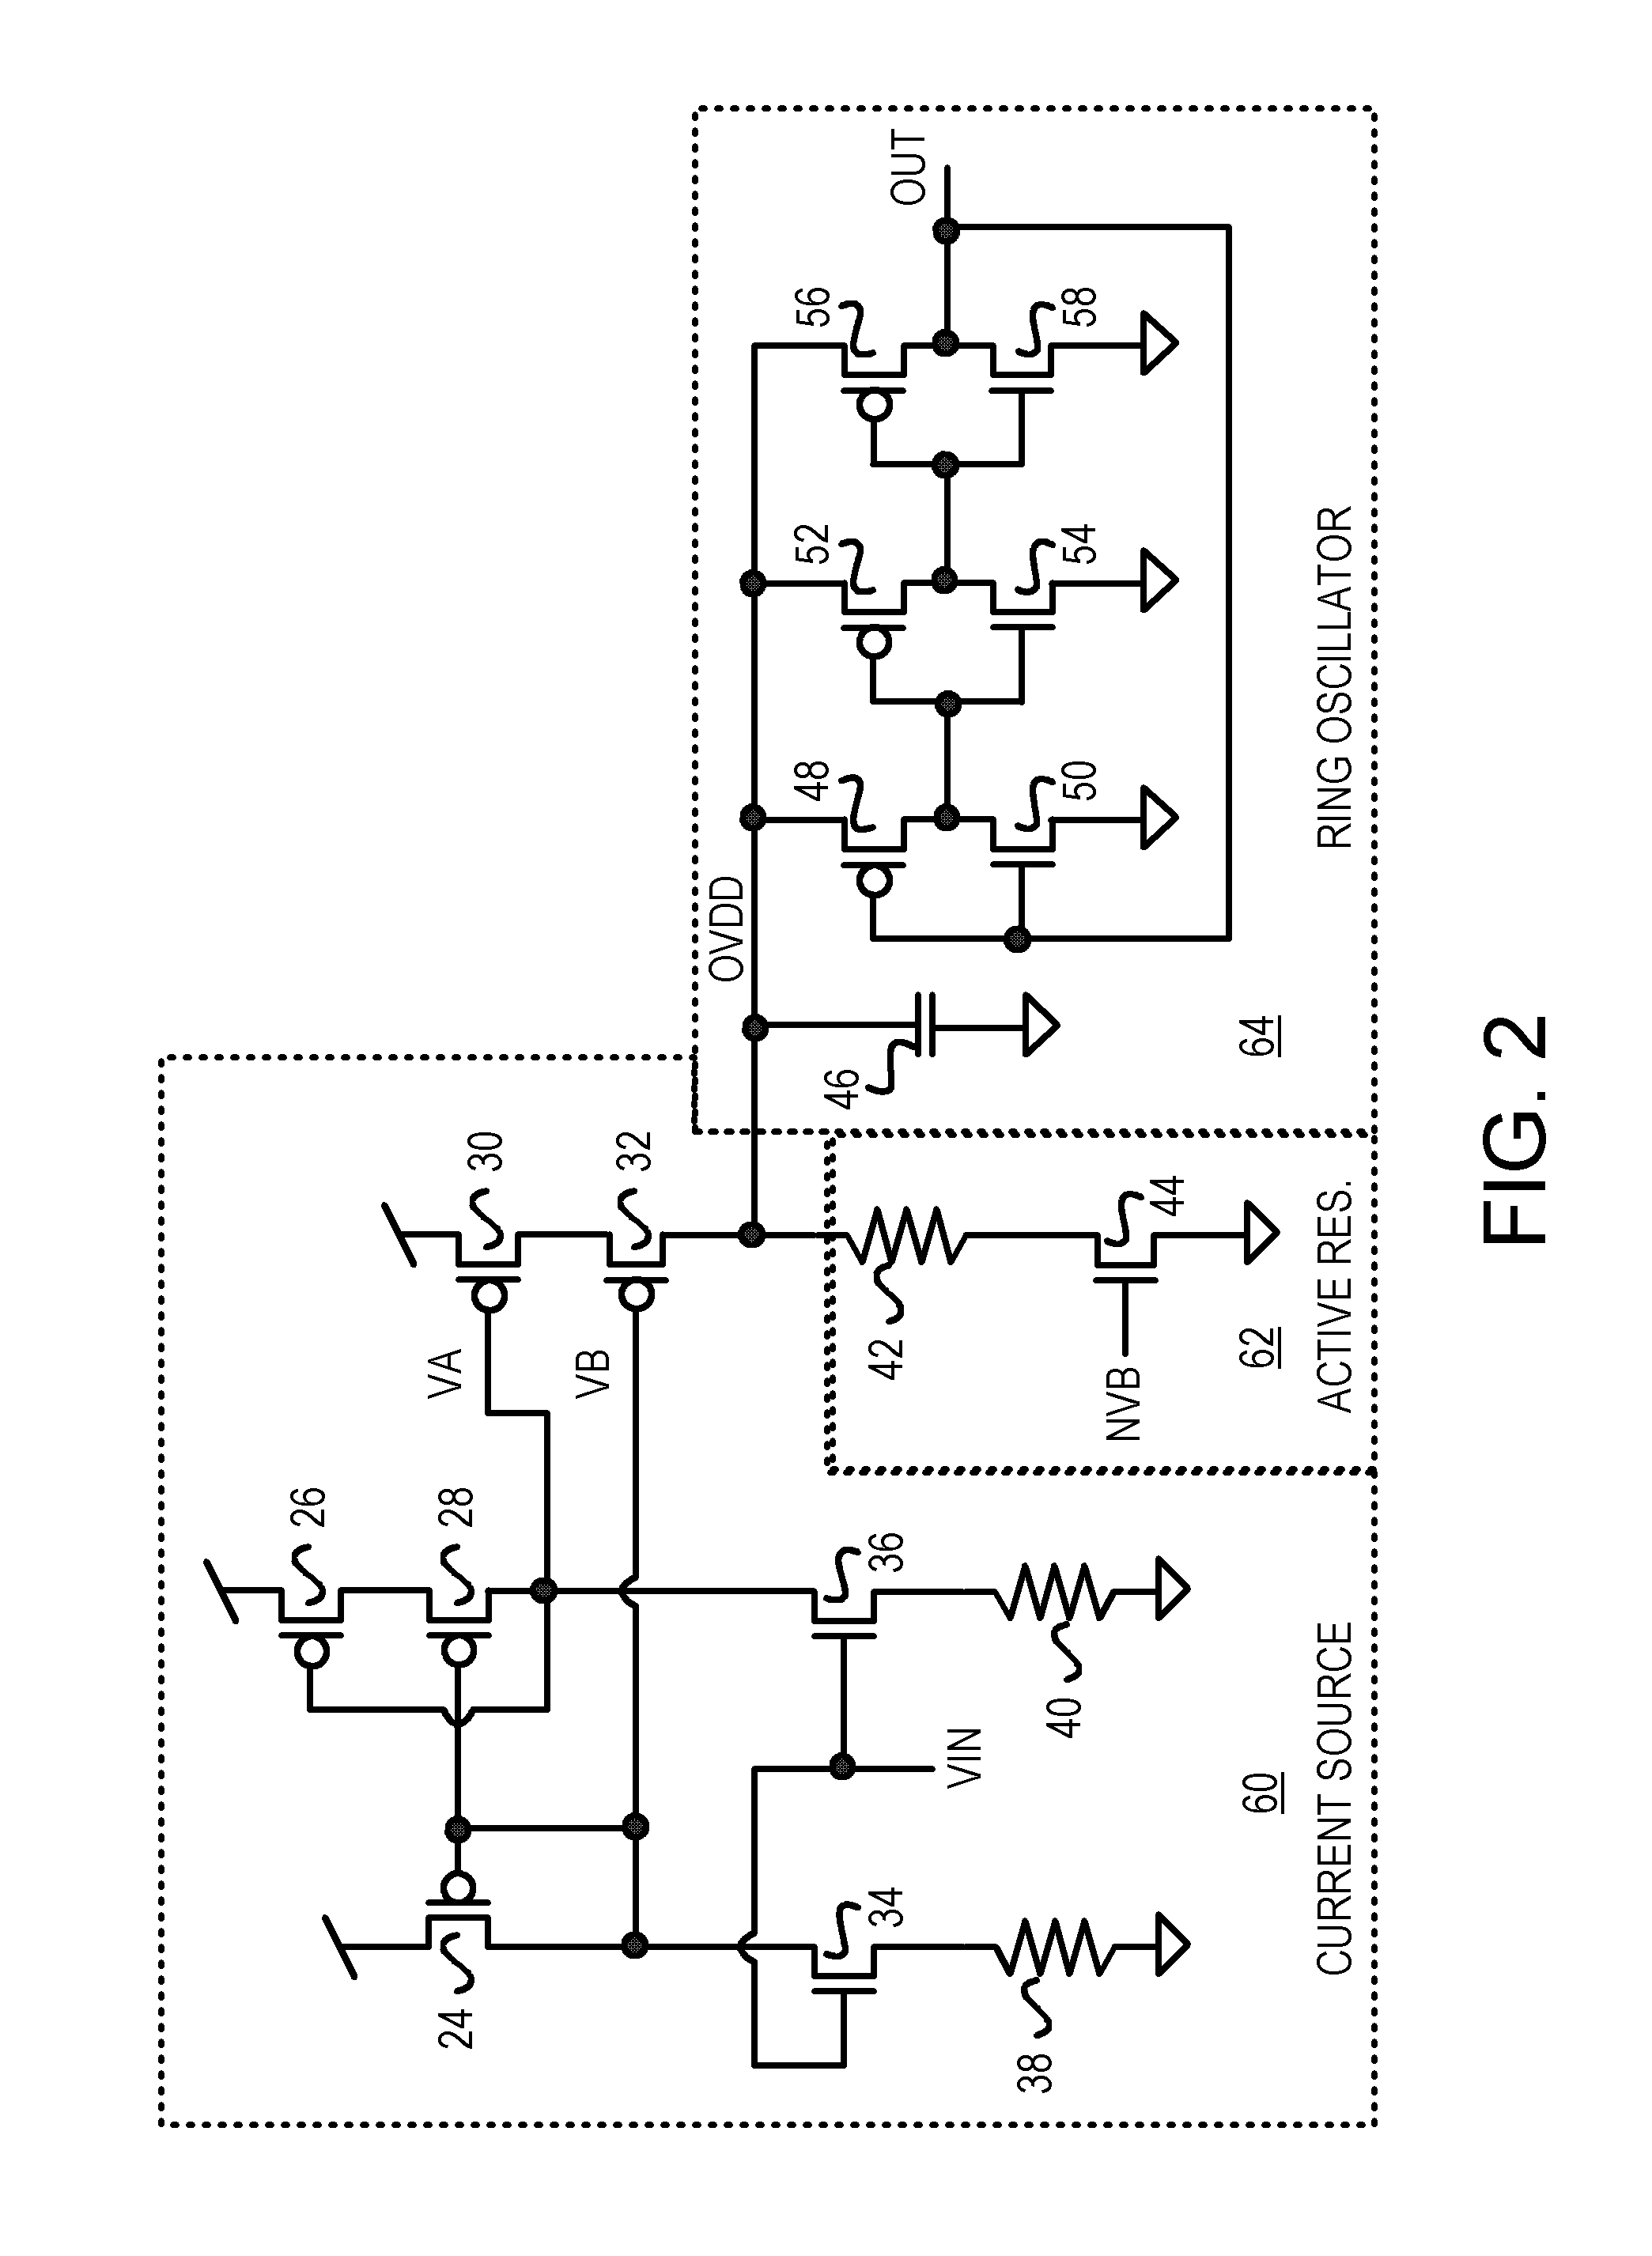 Brevet Us7015766 Cmos Voltage Controlled Oscillator Vco With A The Circuit That We Will Build Patent Drawing